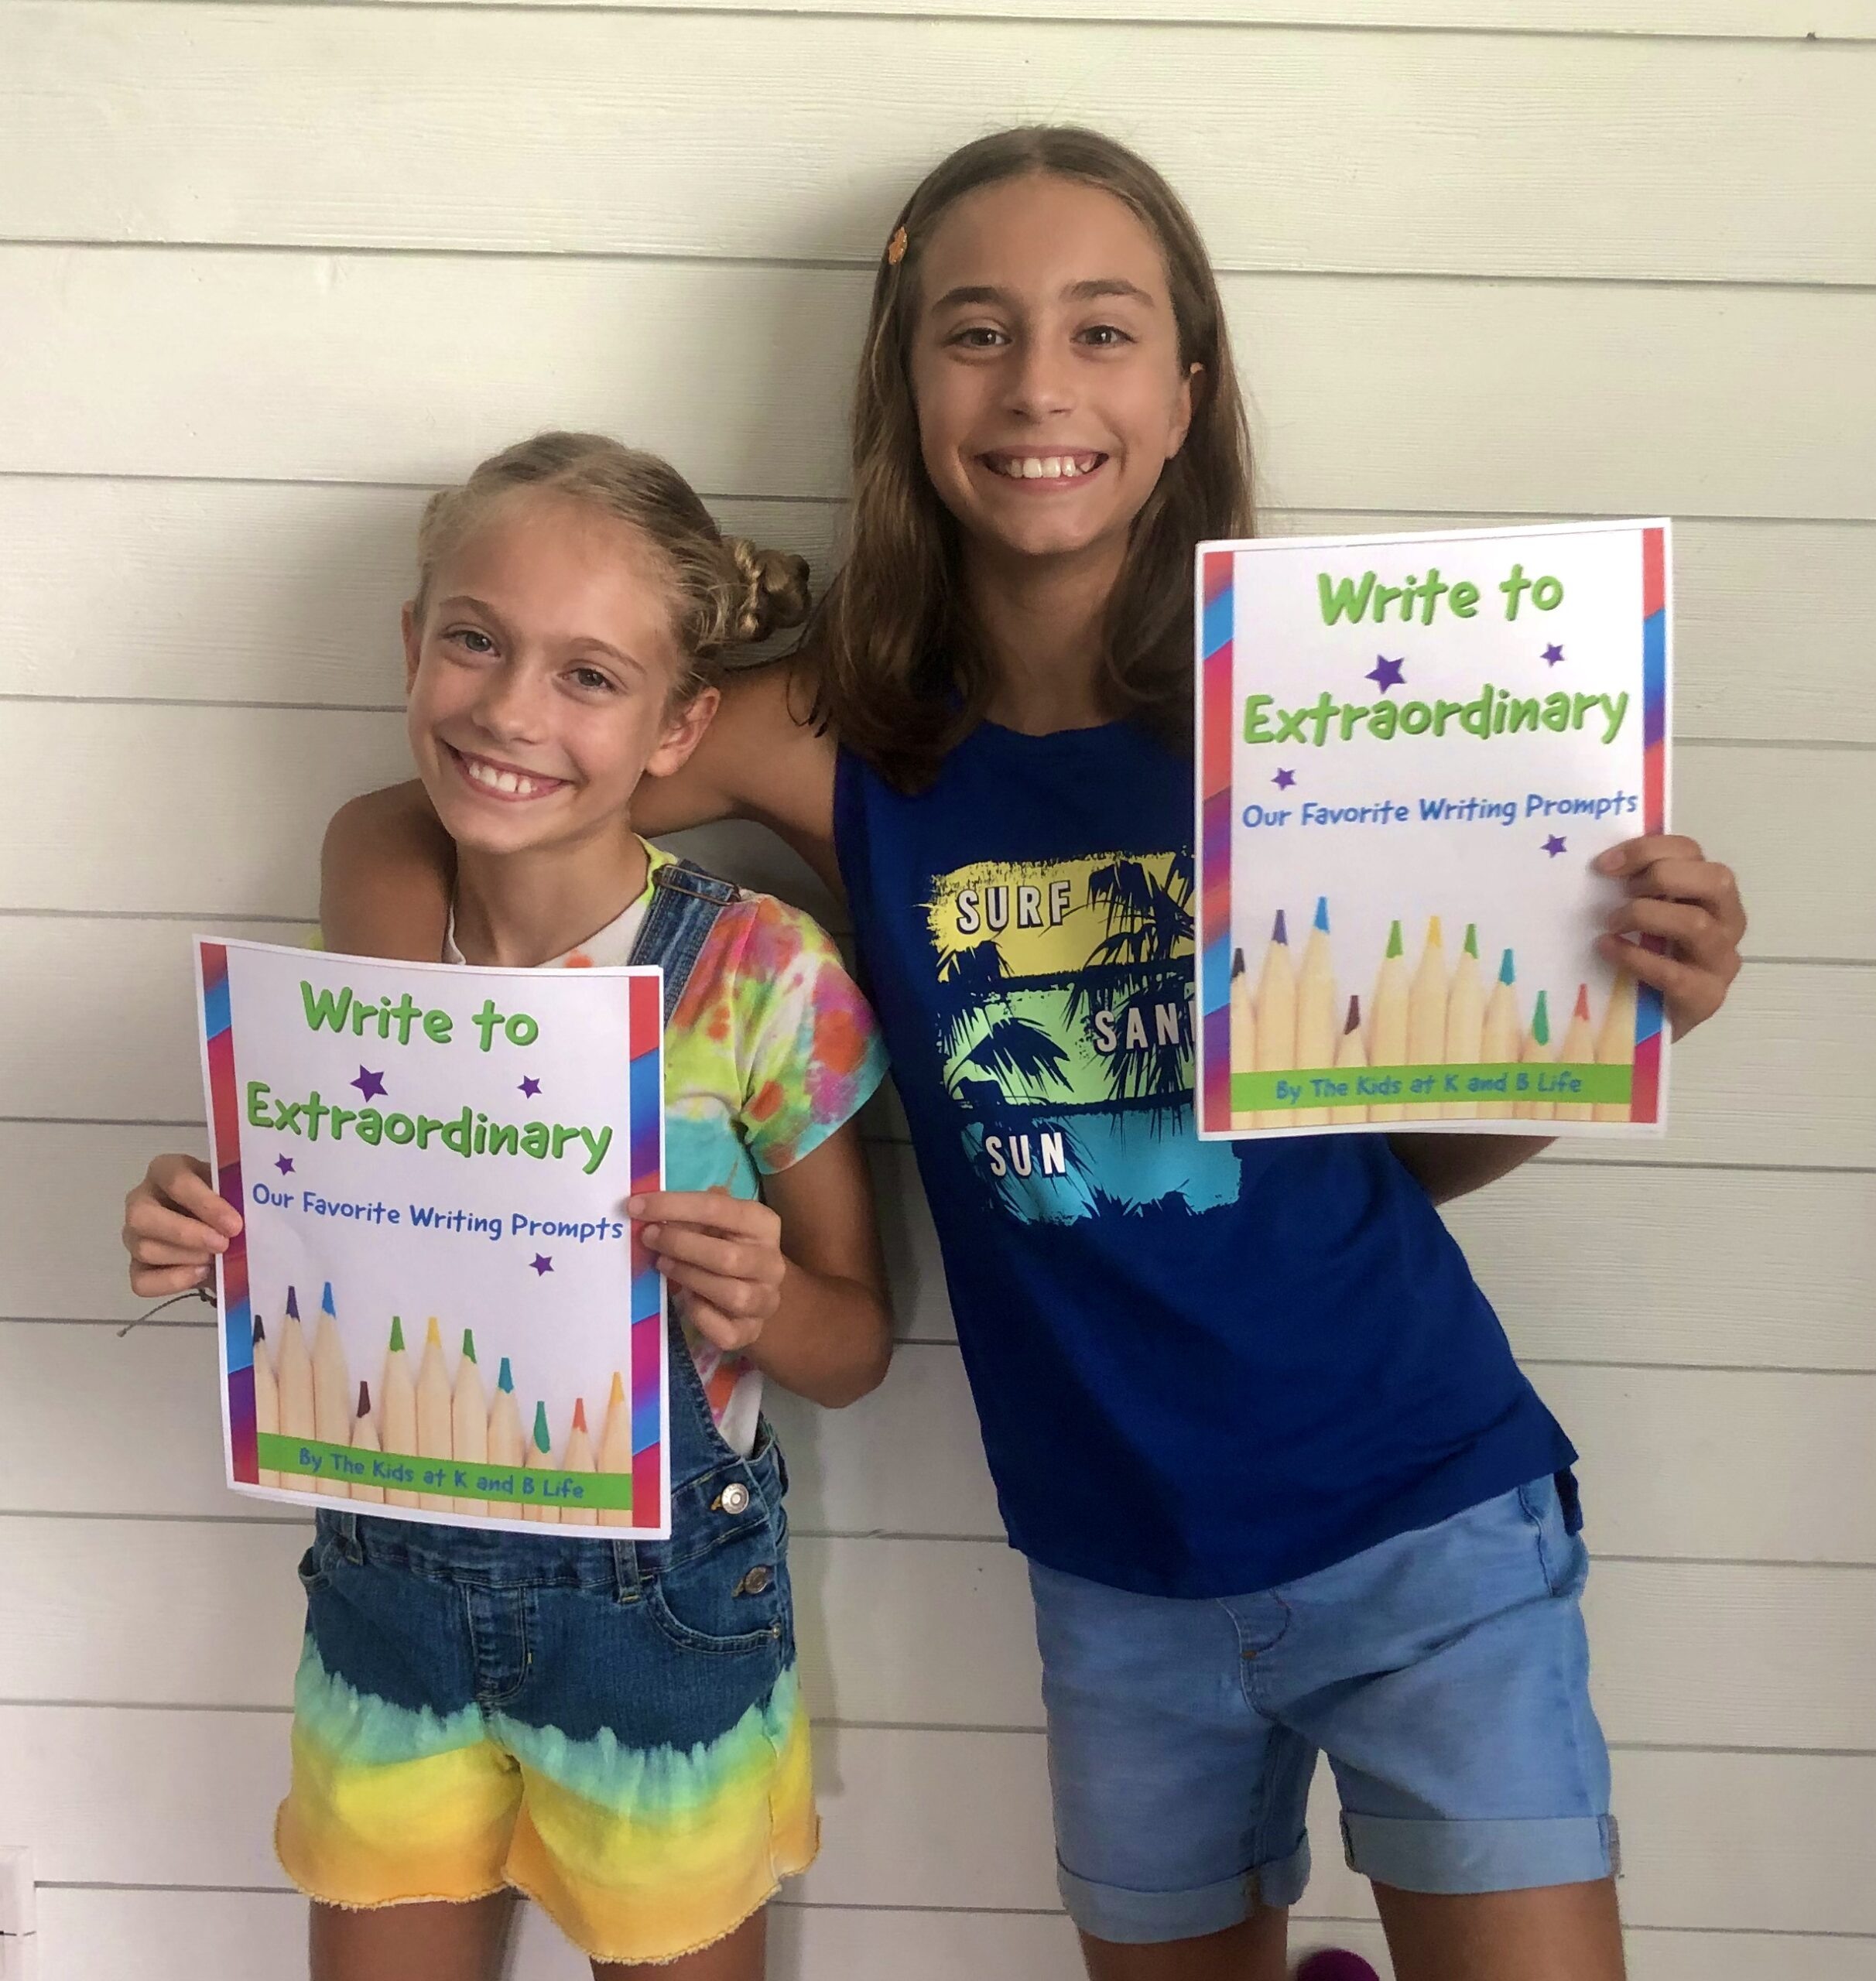 K and B holding up the Write to Extraordinary Guide for writing prompts and tips.